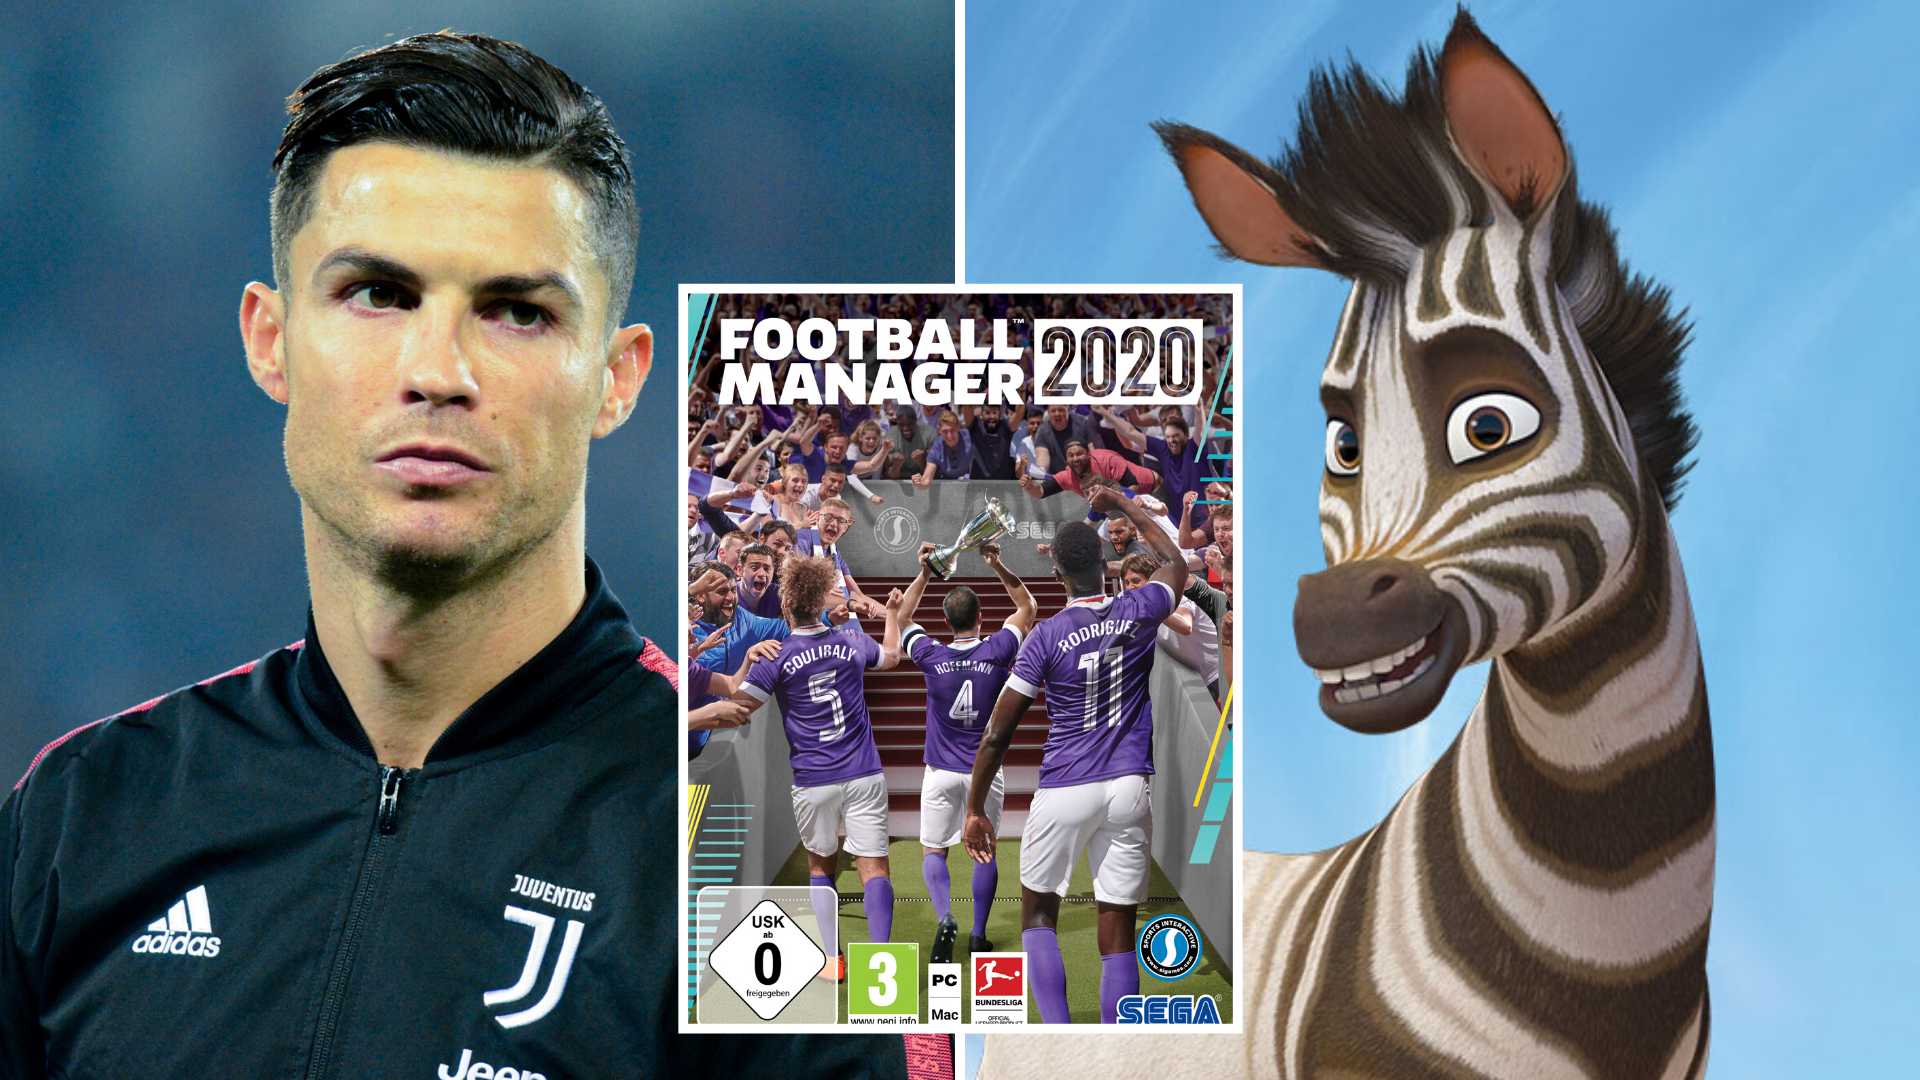 Juventus Licence Won T Feature In Football Manager 2020 After Konami S Exclusive Partnership Sportbible